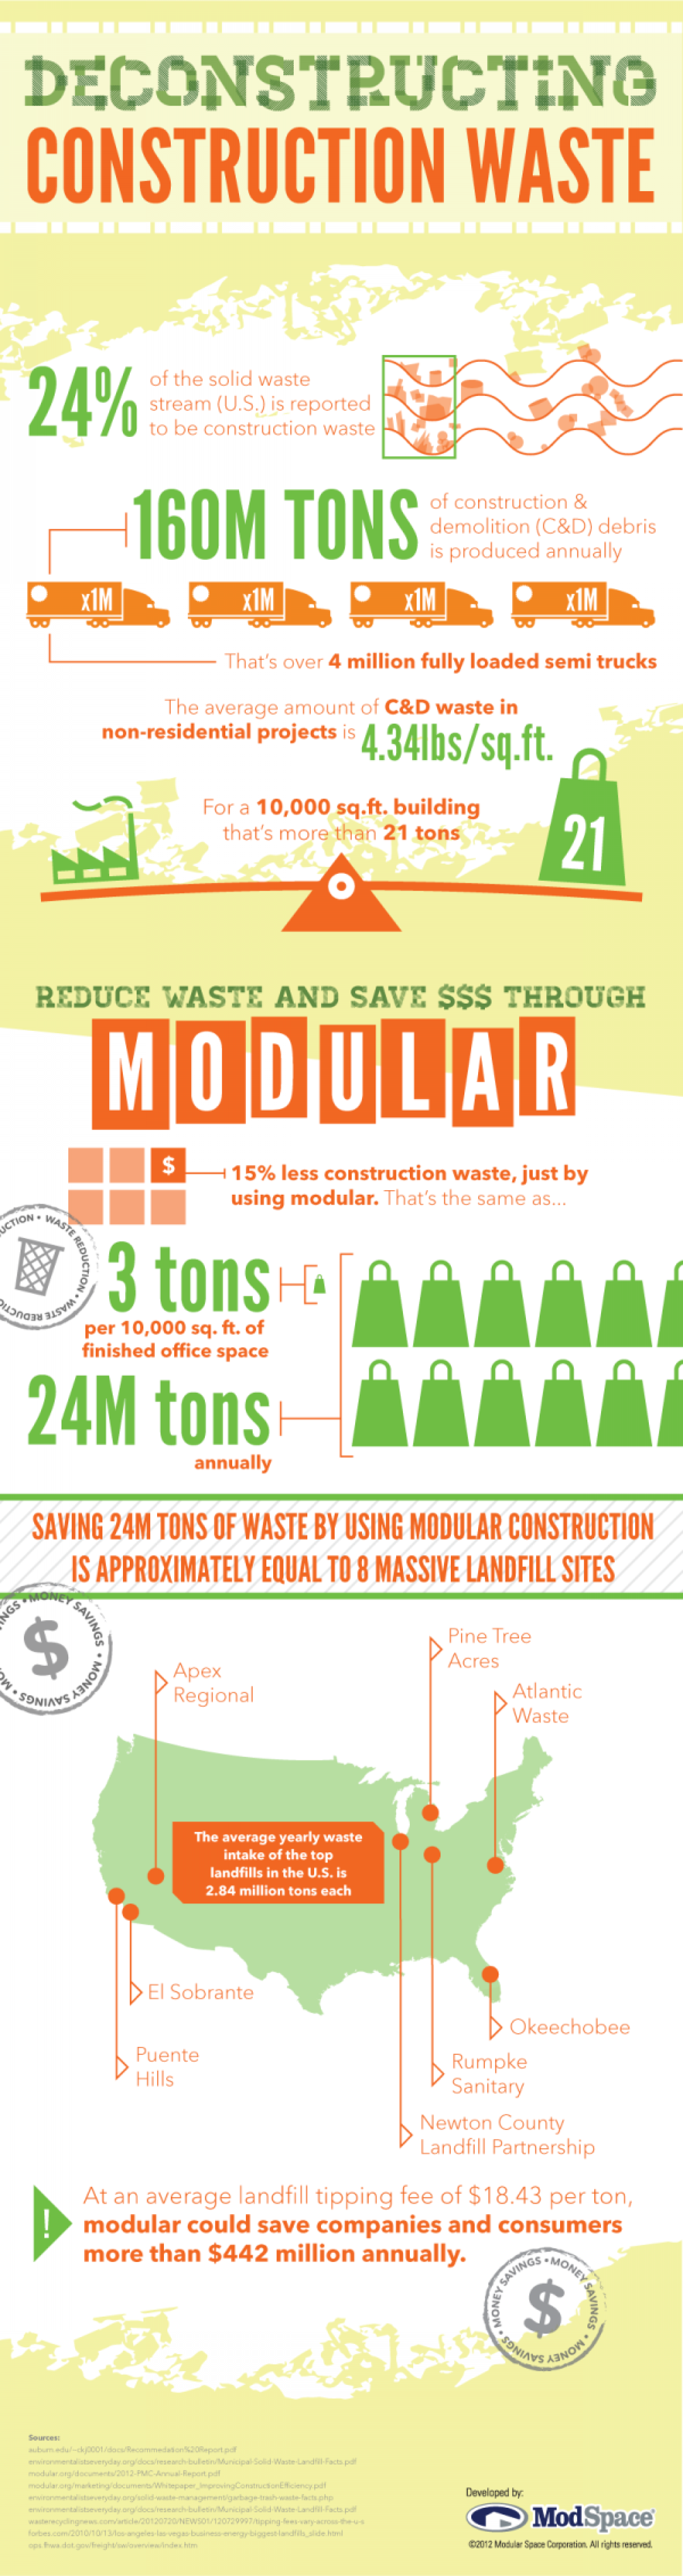 Deconstructing Construction Waste and Saving Big with Modular Infographic